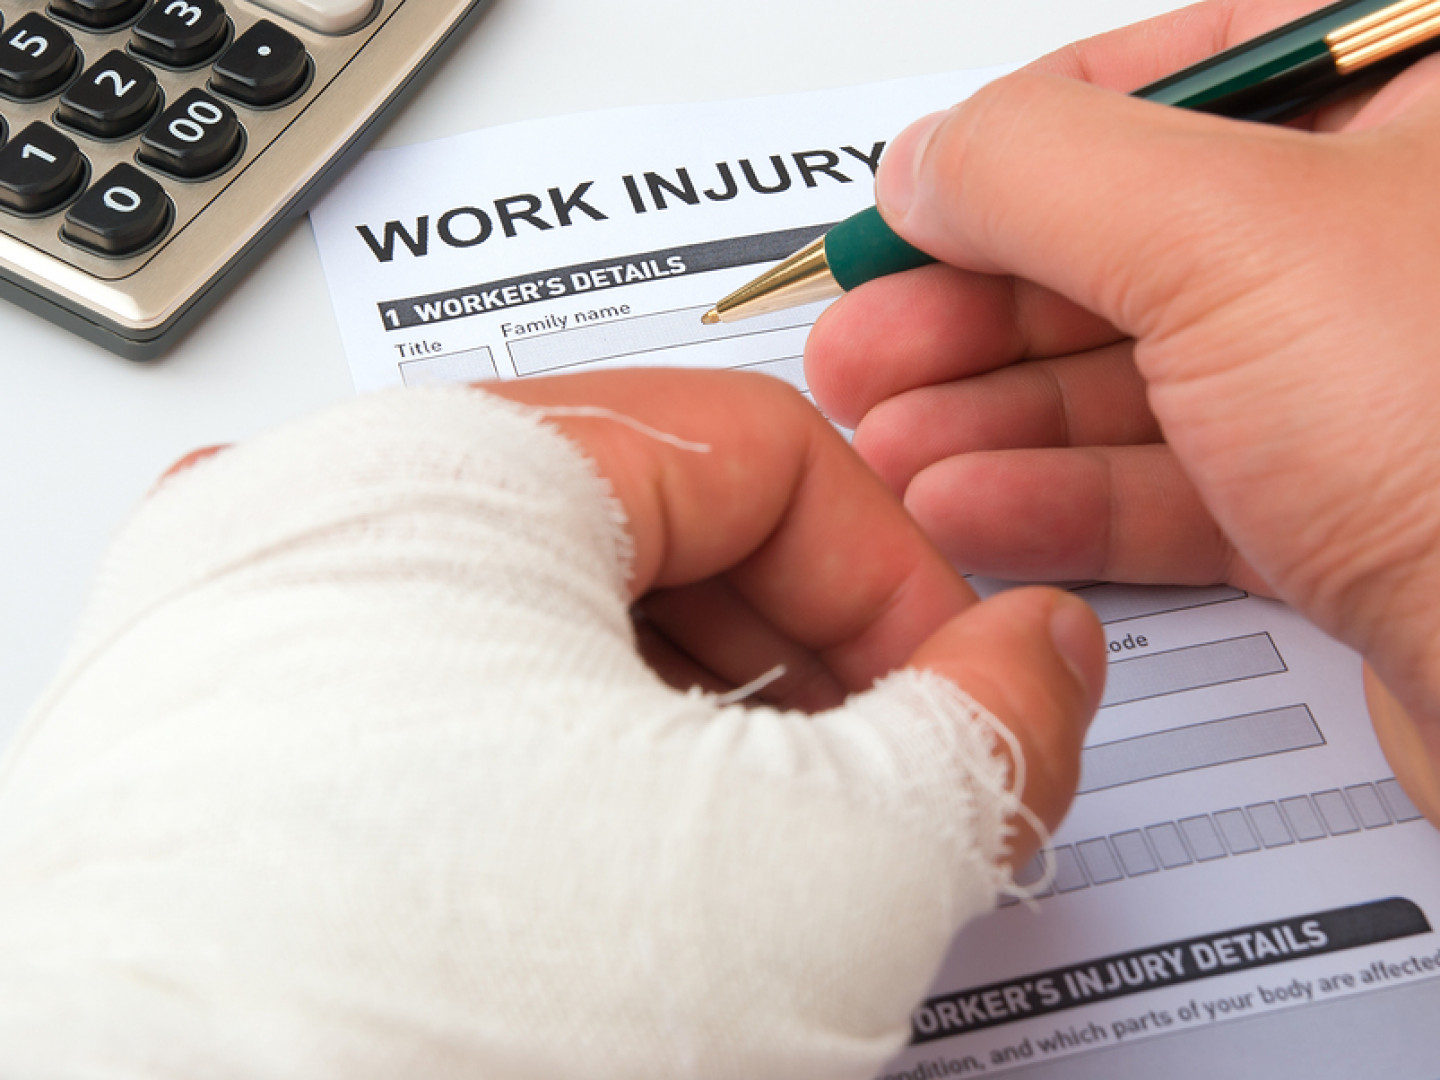 If you're injured on the job, consult an attorney immediately for recovering lost wages and medical losses.